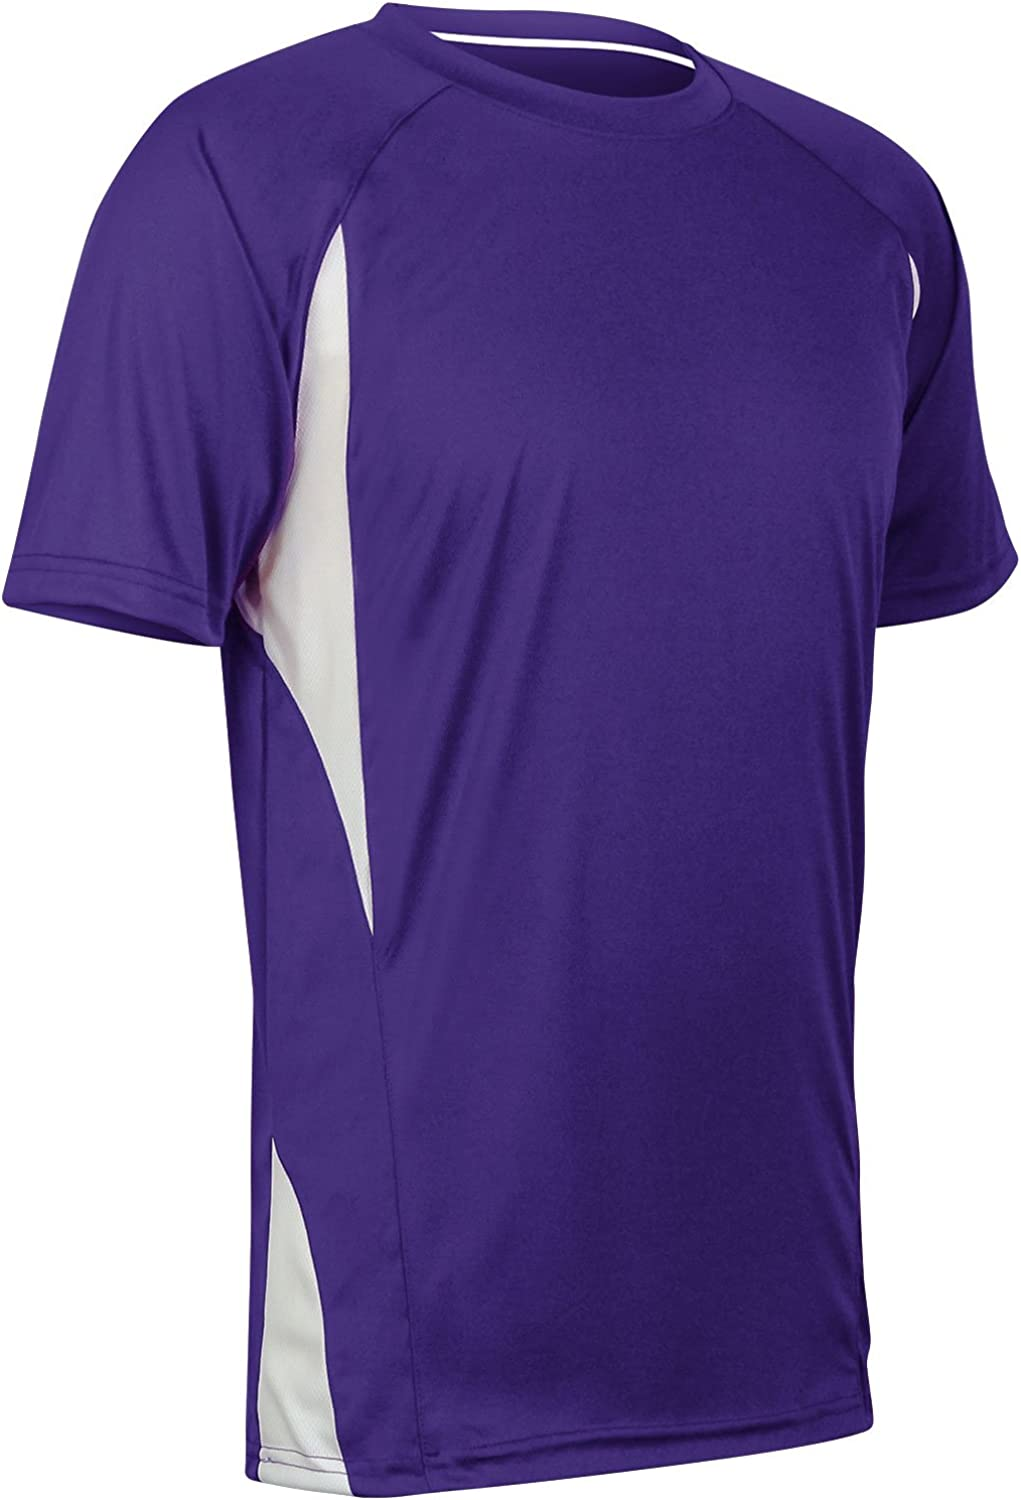 Youth Large Purple,White CHAMPRO Top Spin Lightweight Polyester Baseball Jersey